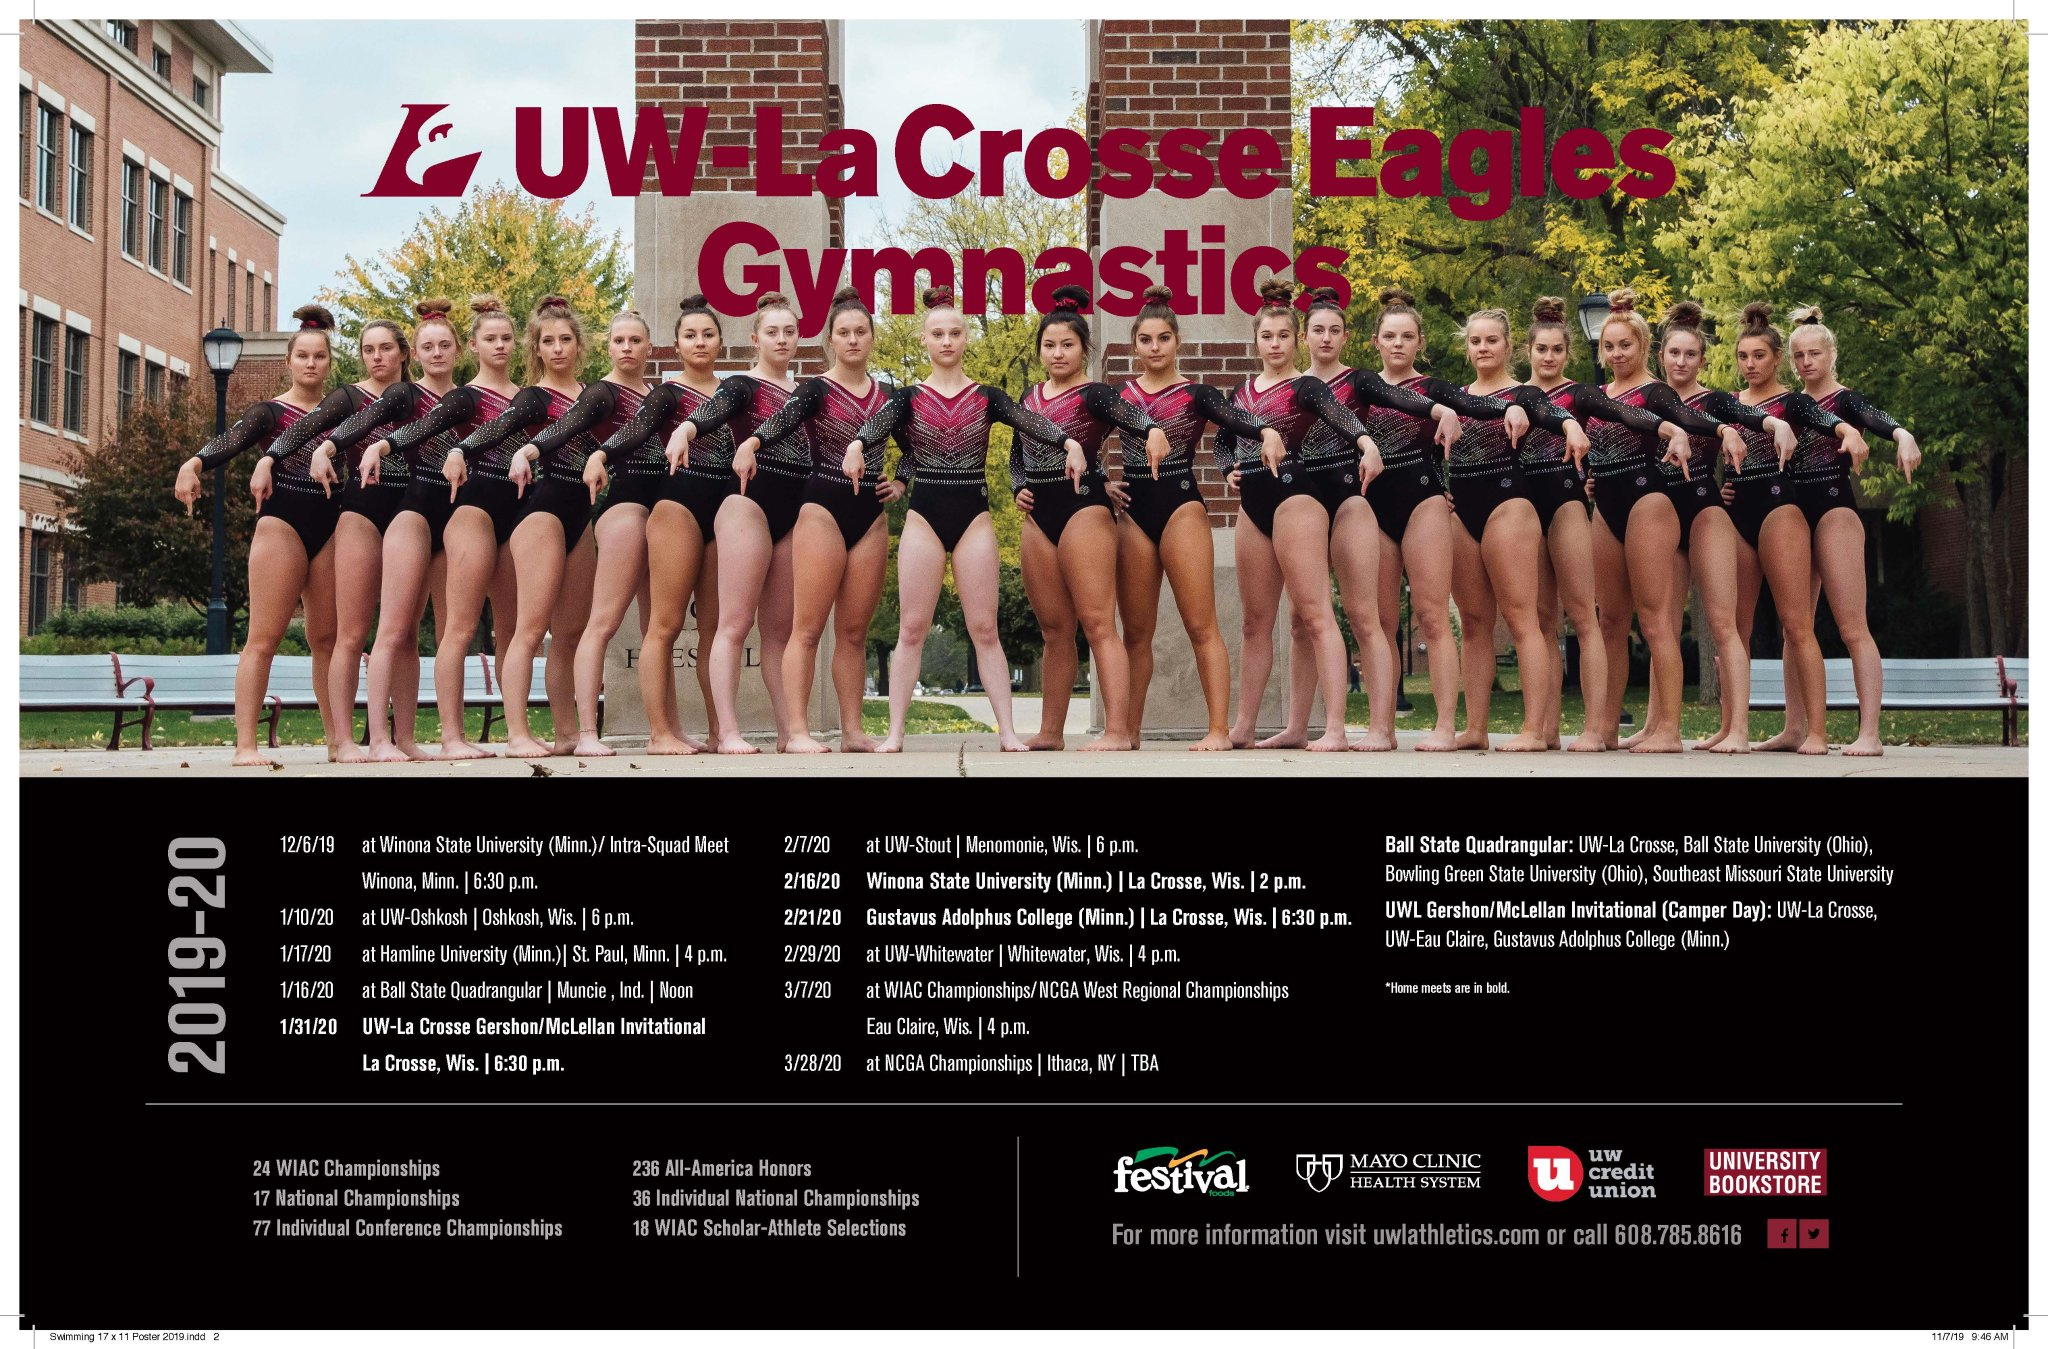 Uwl Athletics On Twitter Check Out The 2019 20 Uwlgymnastics Poster Uwl Starts The Season December 6 With An Intra Squad Meet At Winona State University Go Eagles Https T Co Ziorsf2mhn